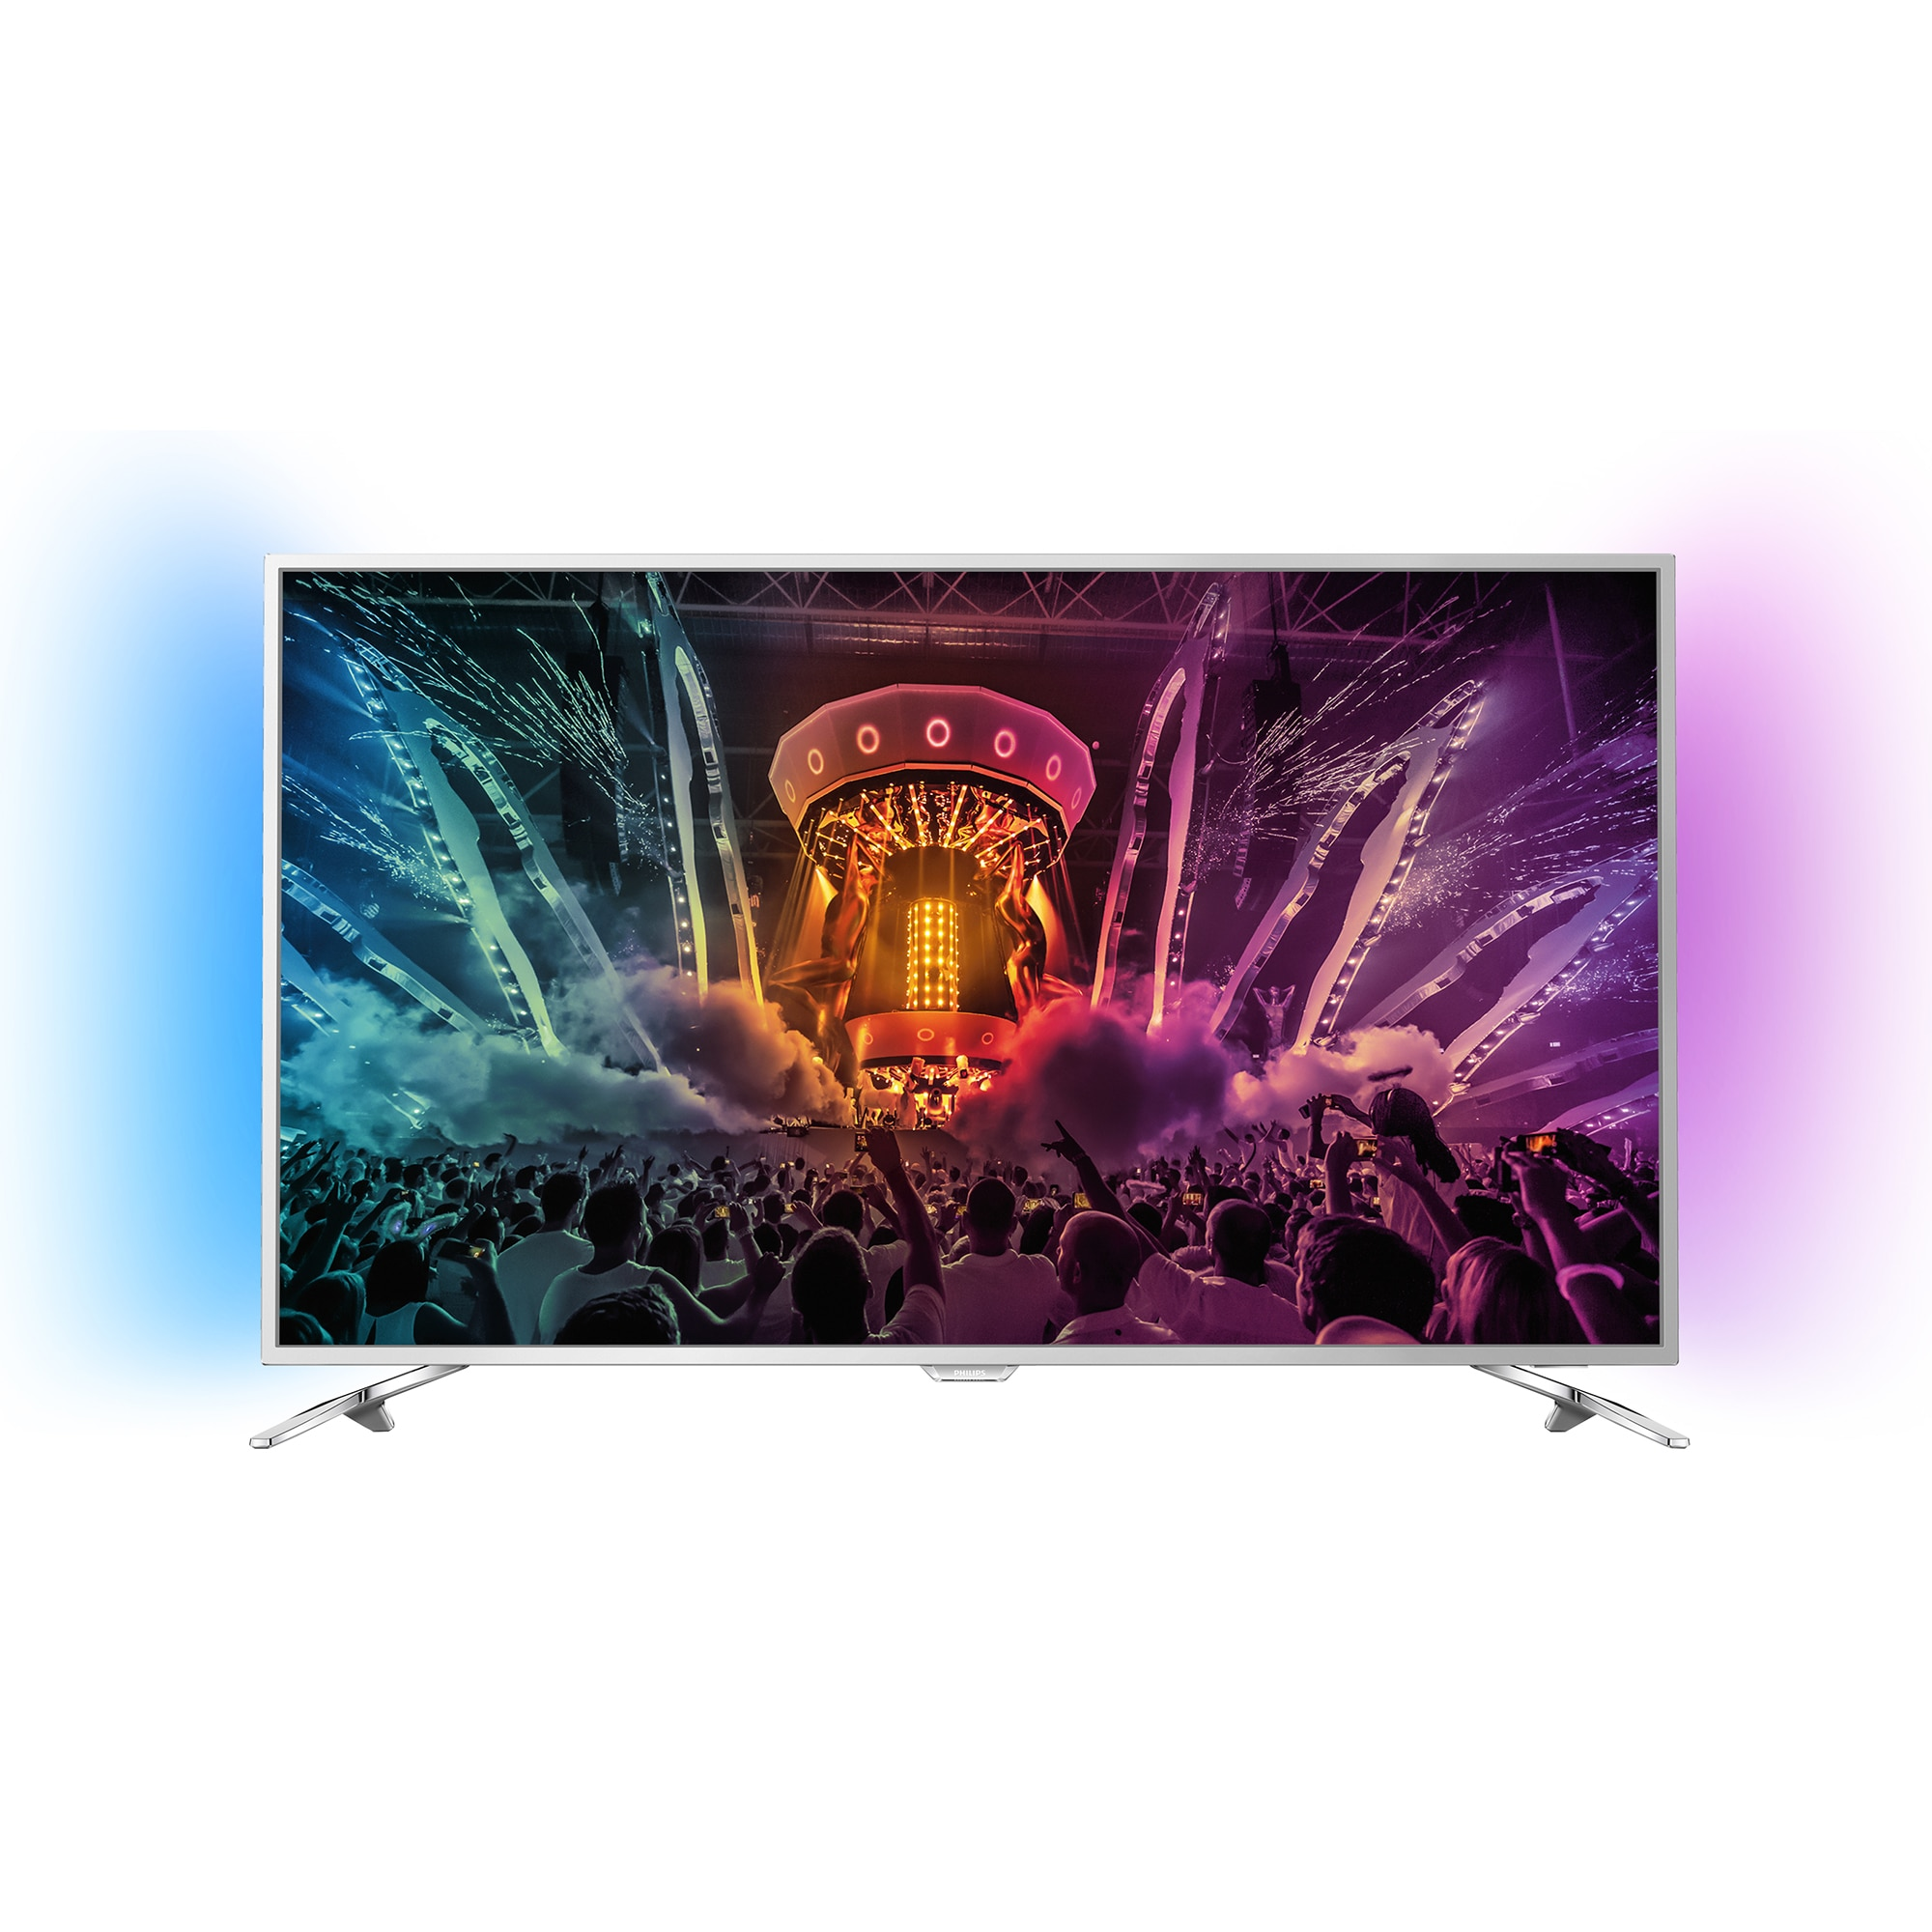 Fotografie Televizor LED Smart Android Philips, 123 cm, 49PUS6501/12, 4K Ultra HD, Clasa B